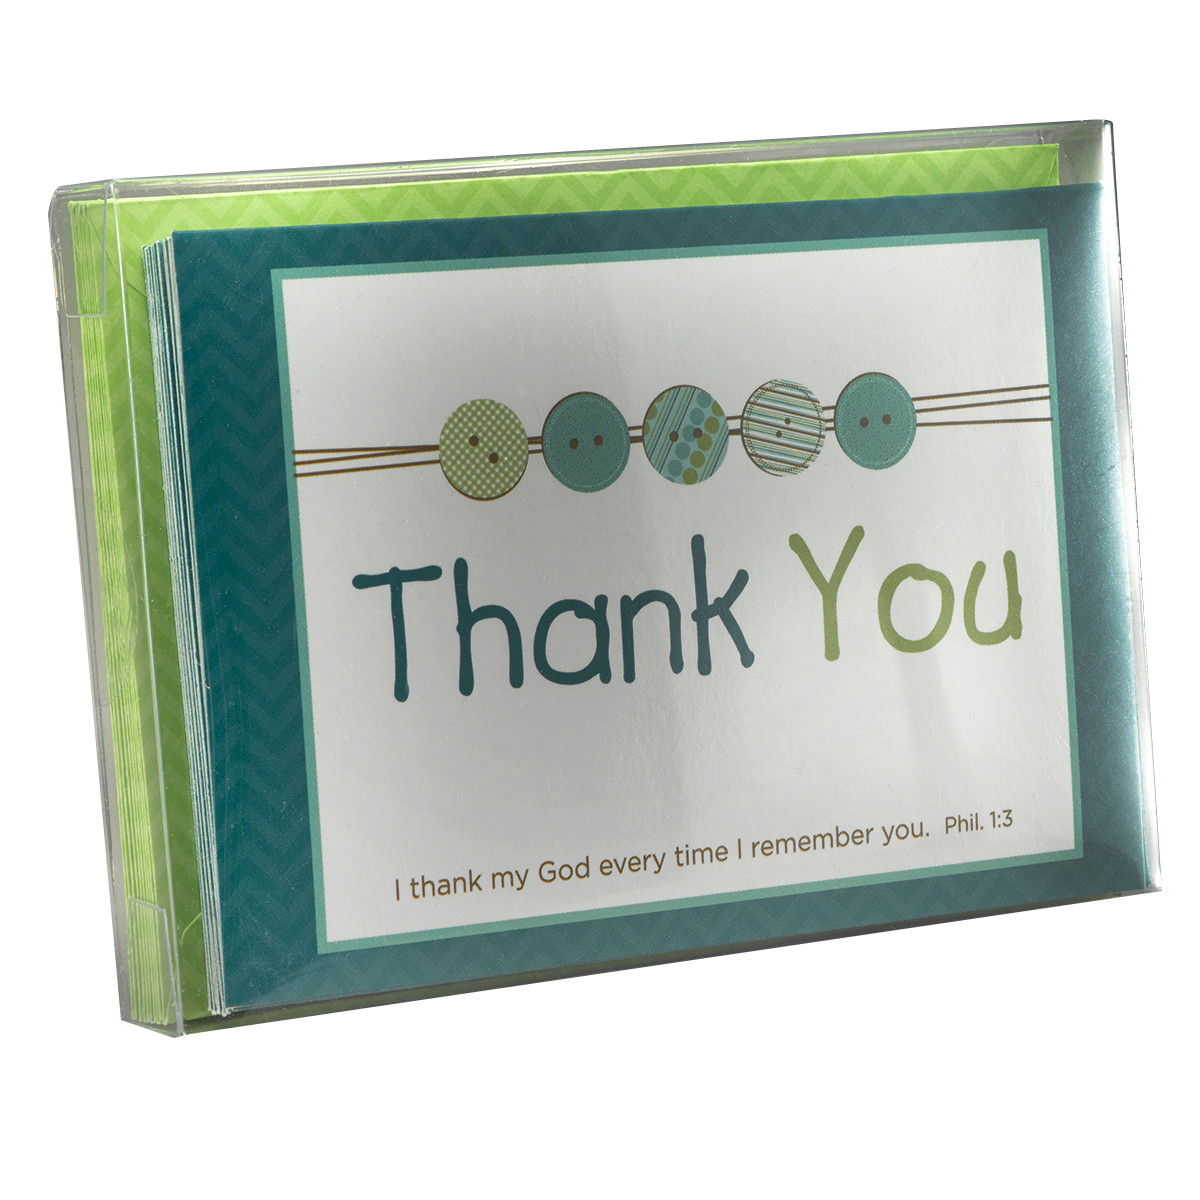 Baby Boy Gift Thank You Cards : Thank you cards for baby boy shower phil